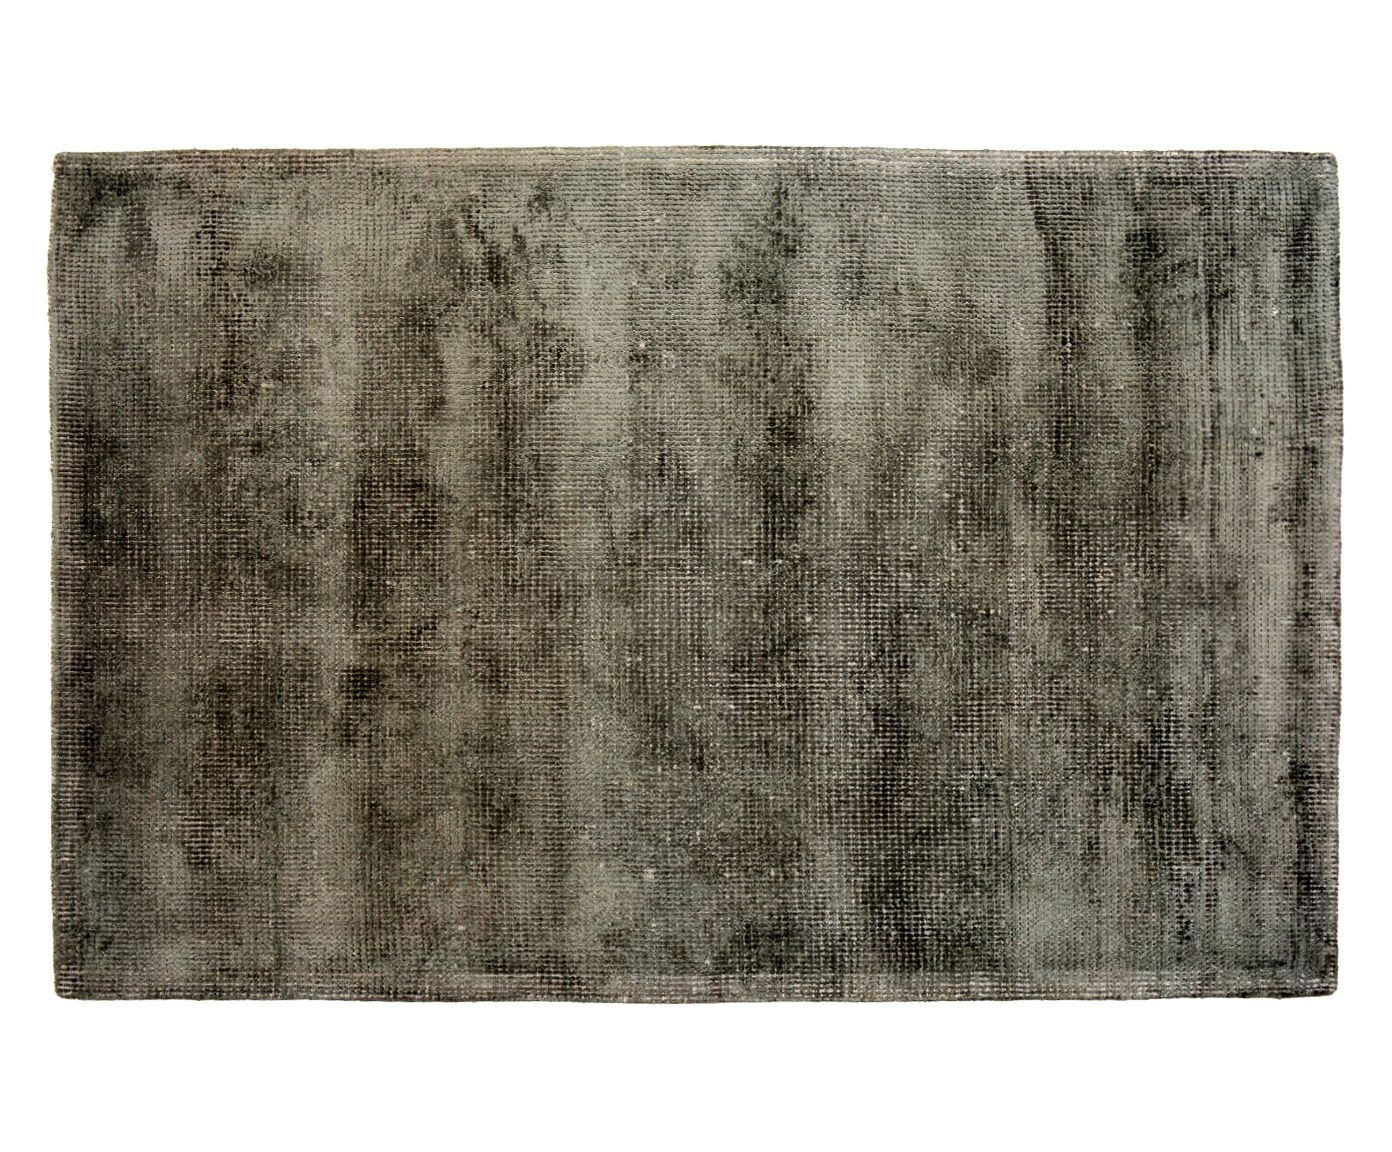 Tapete Artesanal Indiano Navnit - 152X242cm | Westwing.com.br